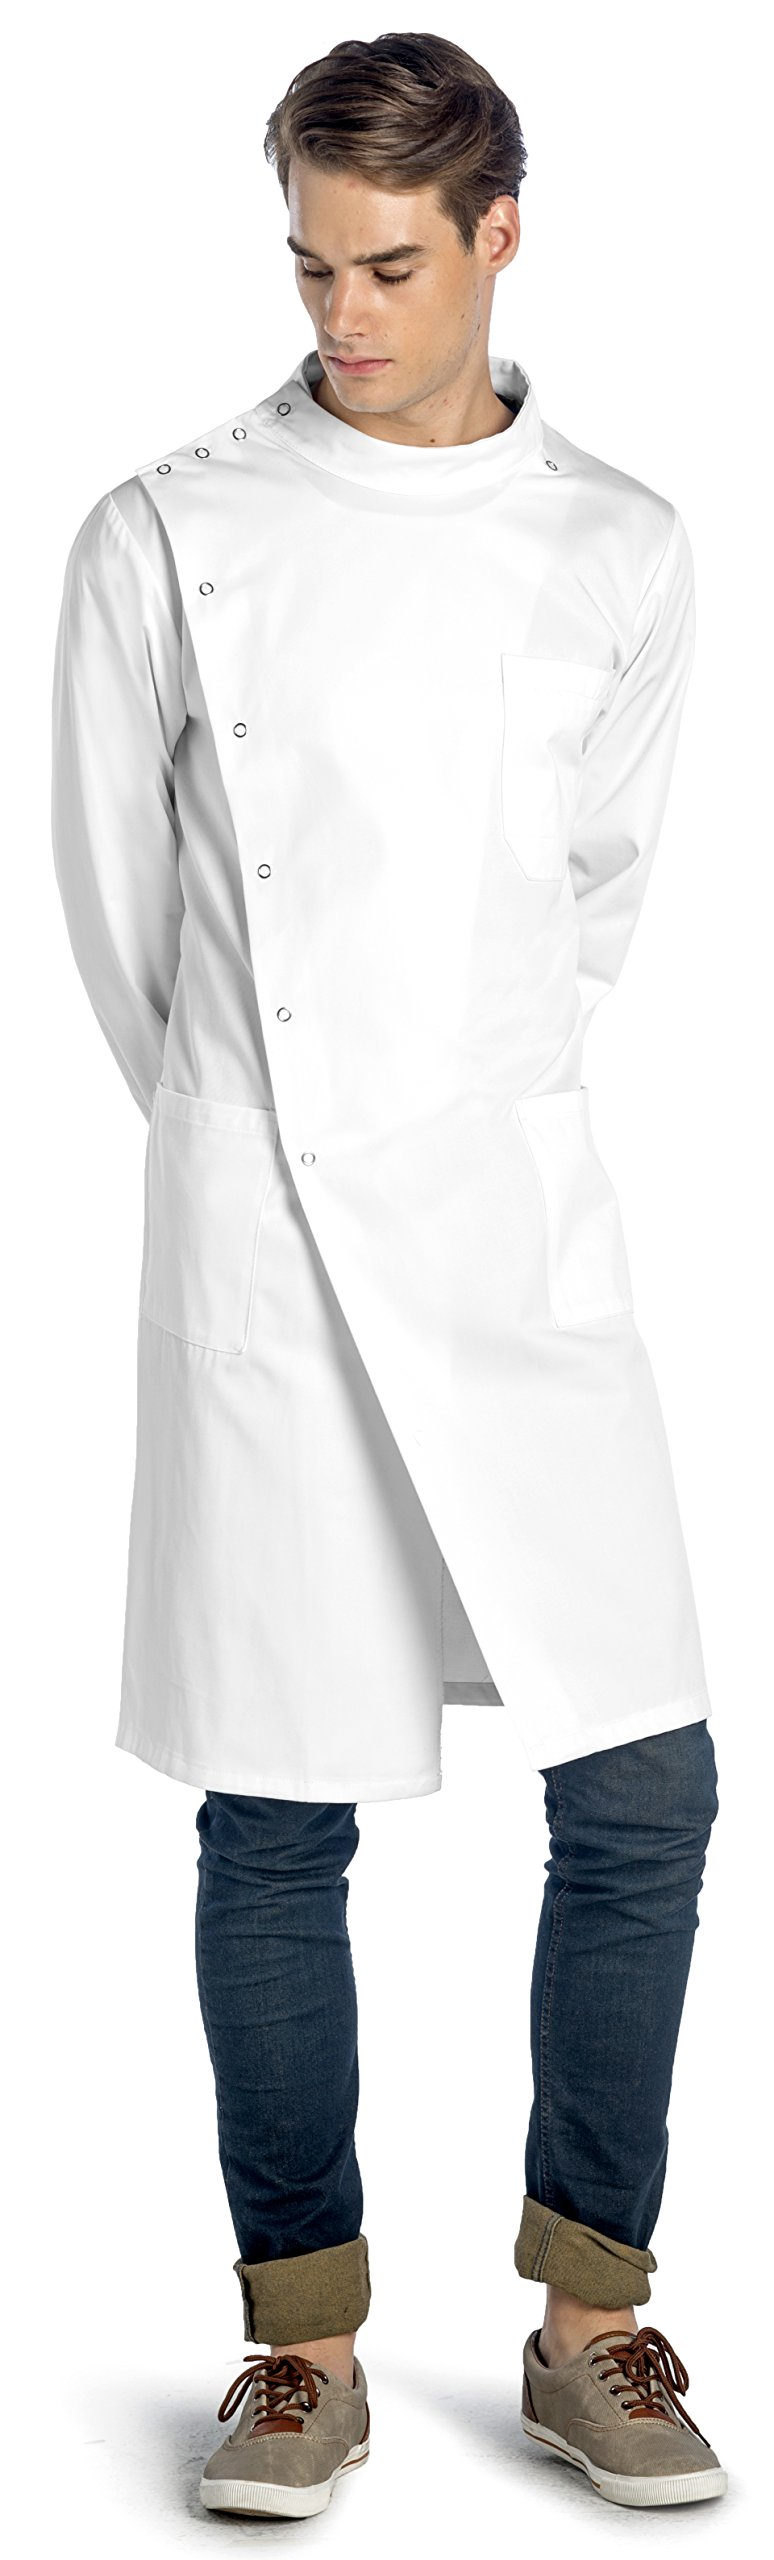 Dr. Howie Unisex White Lab Coat with Mandarin Collar • PROFESSIONAL QUALITY US-06-L